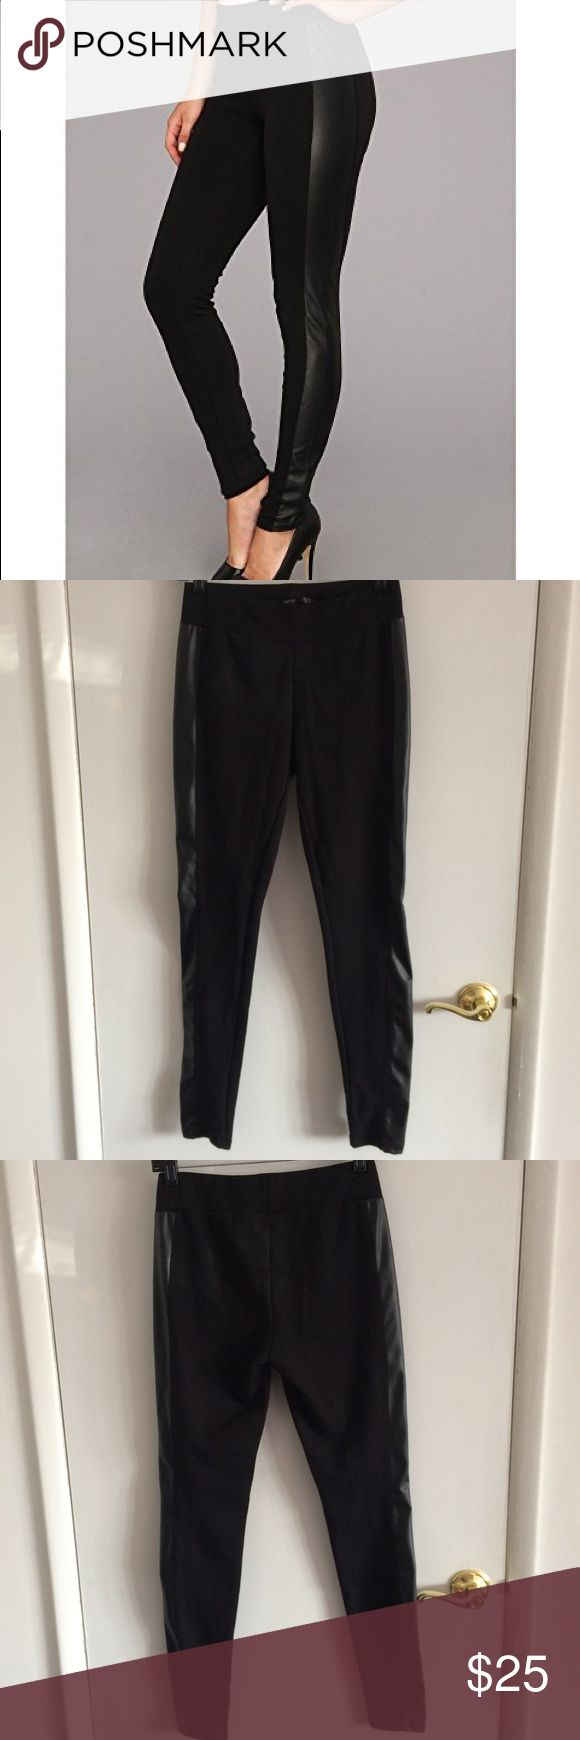 NWOT Kensie Pont Leggings with Faux Leather Trim Bought at Lord and Taylor. Only tried on. Size small. Great for stepping up any outfit💅🏼 Kensie Pants Leggings